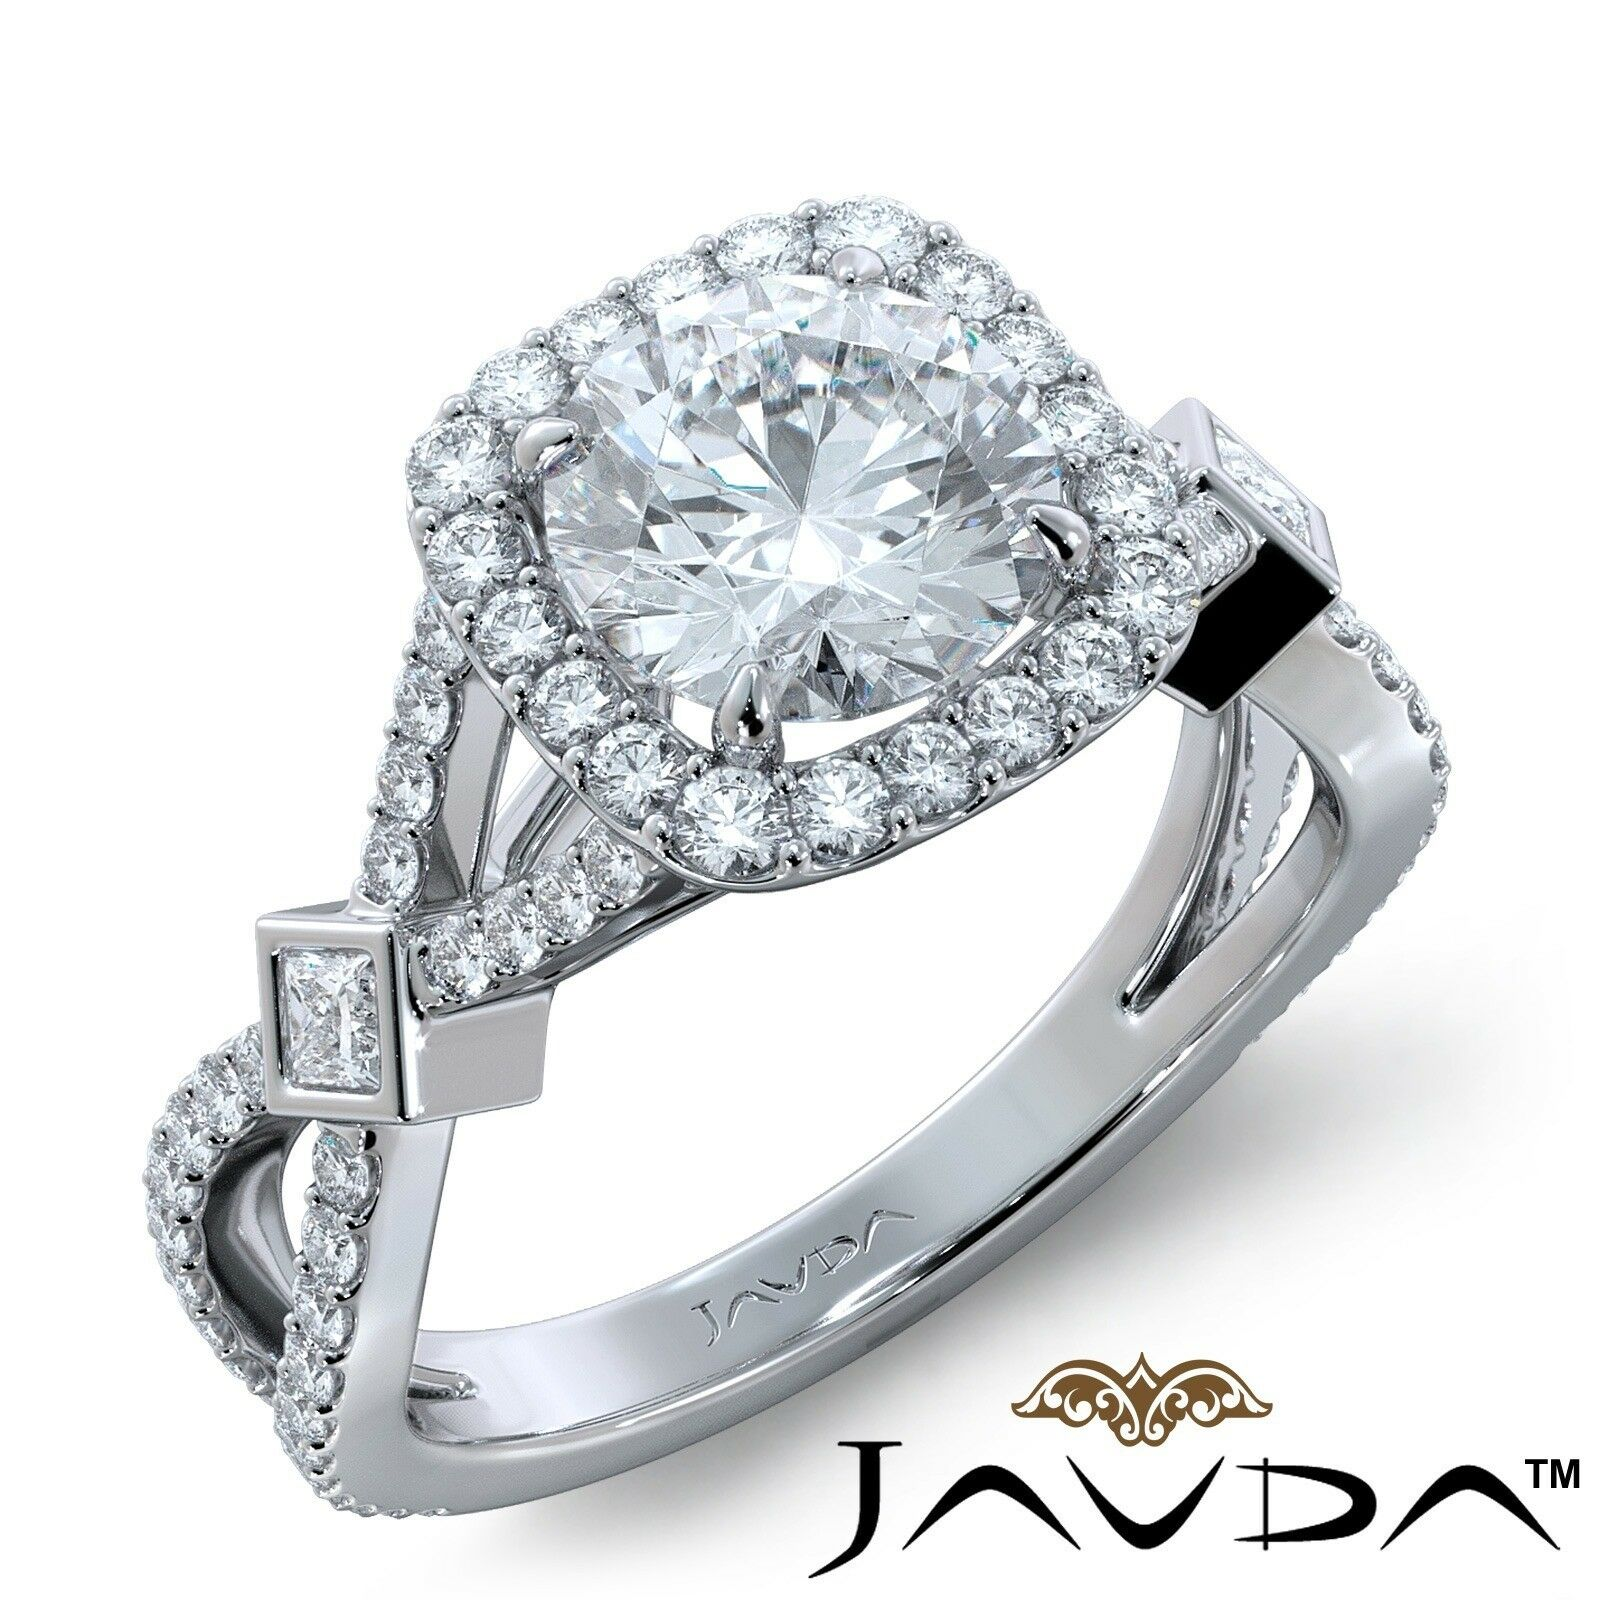 1.45ctw Cross Shank Filigree halo Round Diamond Engagement Ring GIA G-VS1 W Gold